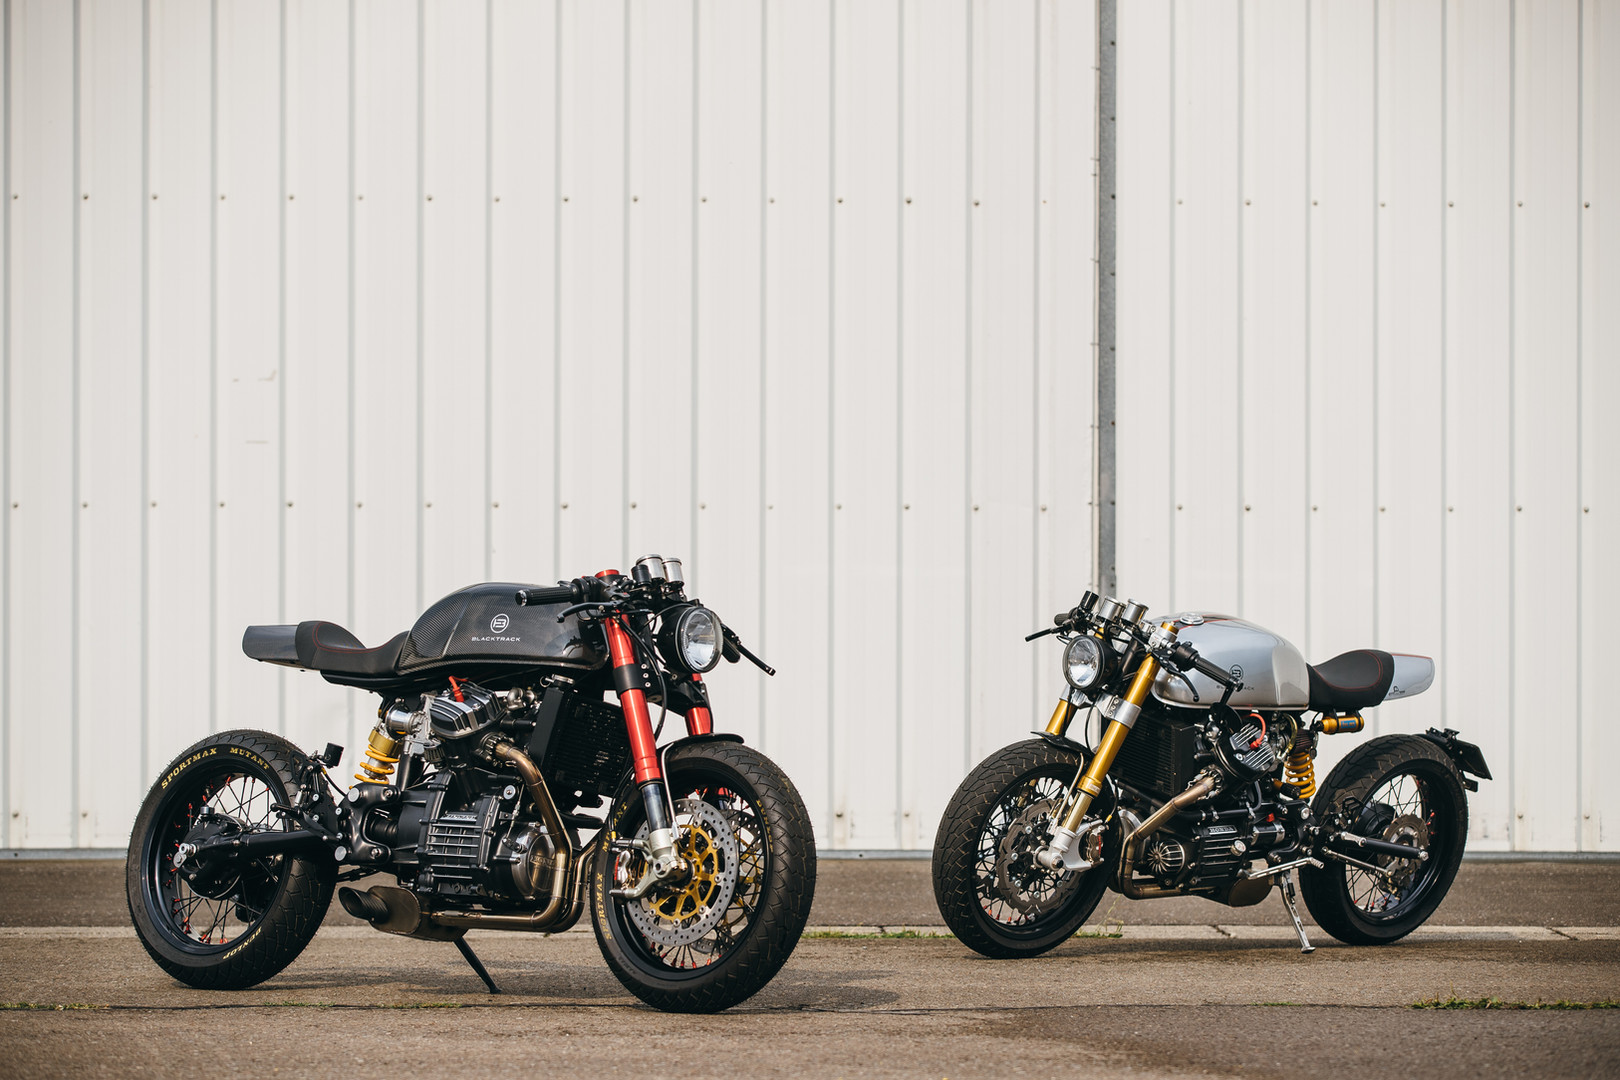 Cafe racers BT01 Carbon and BT01 based on a Honda CX500